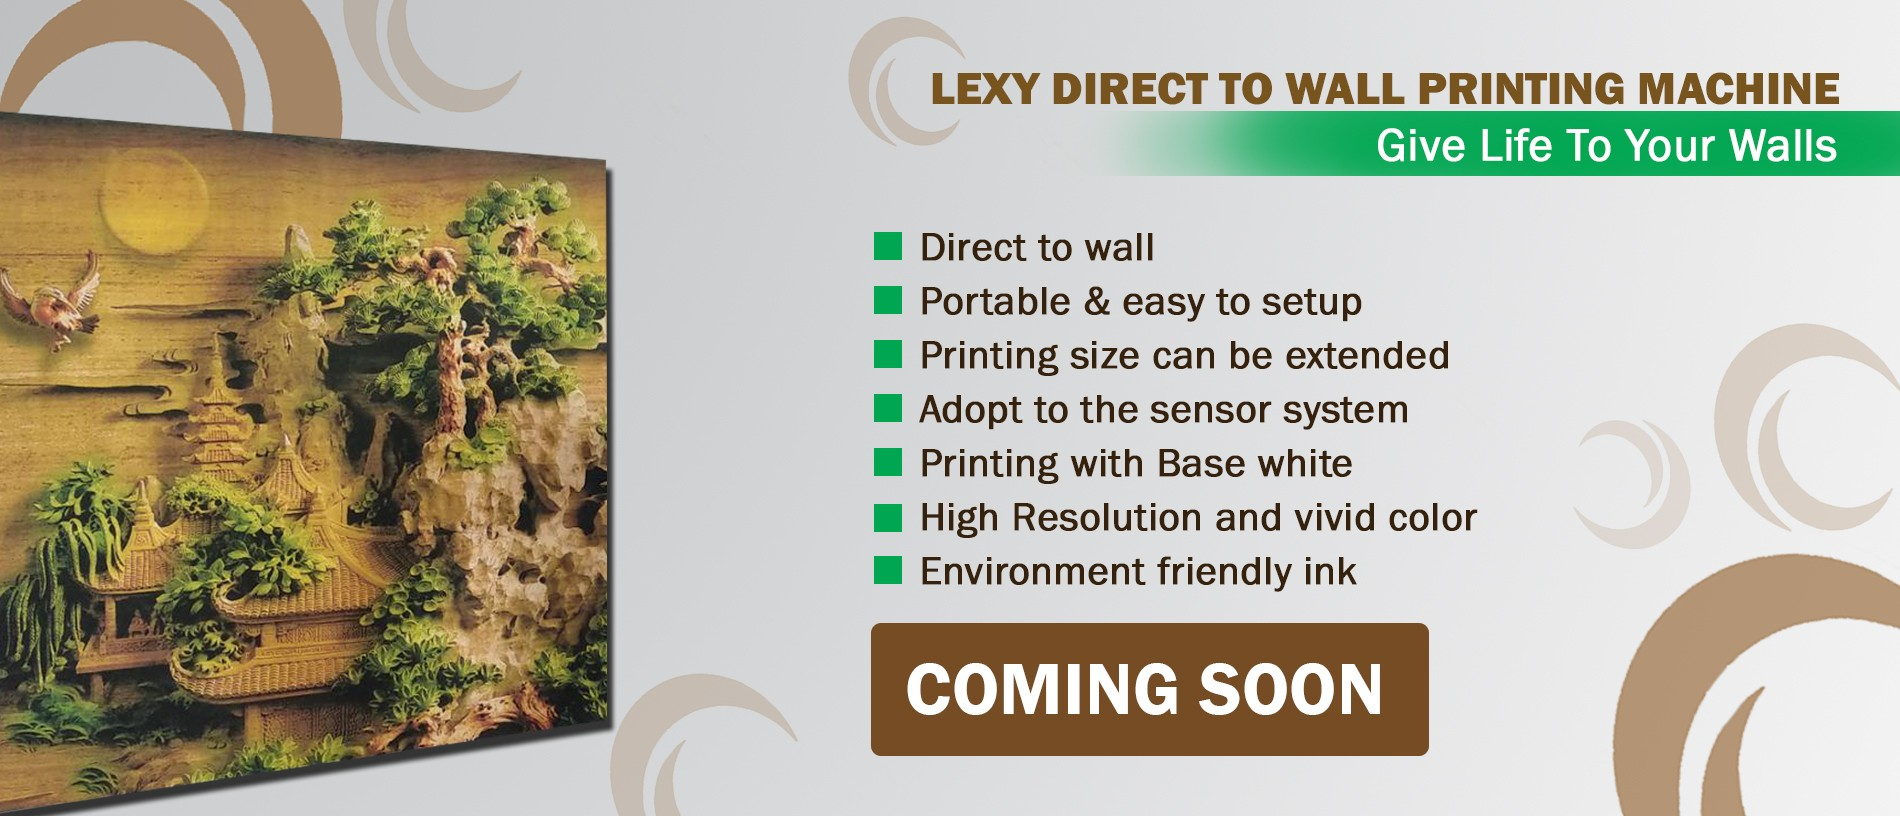 Lexy Direct Wall Printing Machine